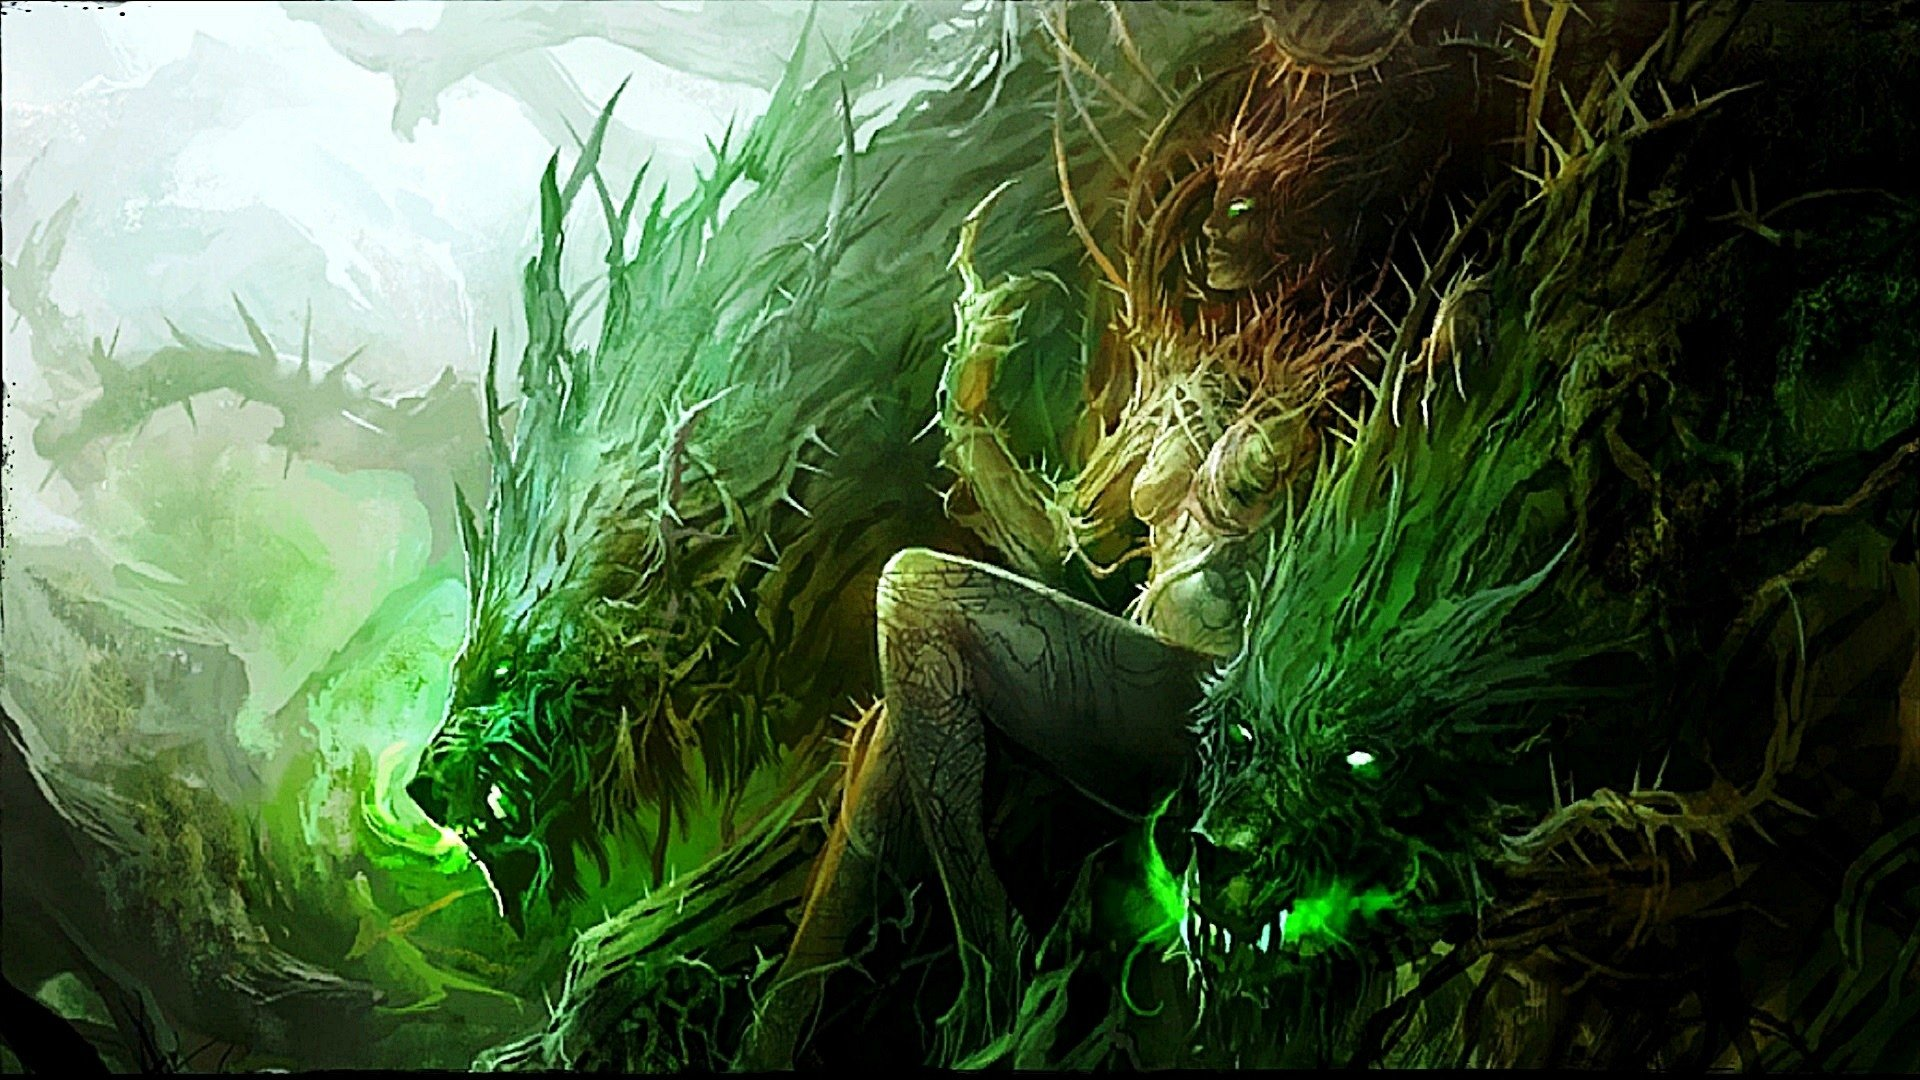 Guild Wars 2 Full Hd Wallpaper And Background Image: Twilight Arbor HD Wallpaper